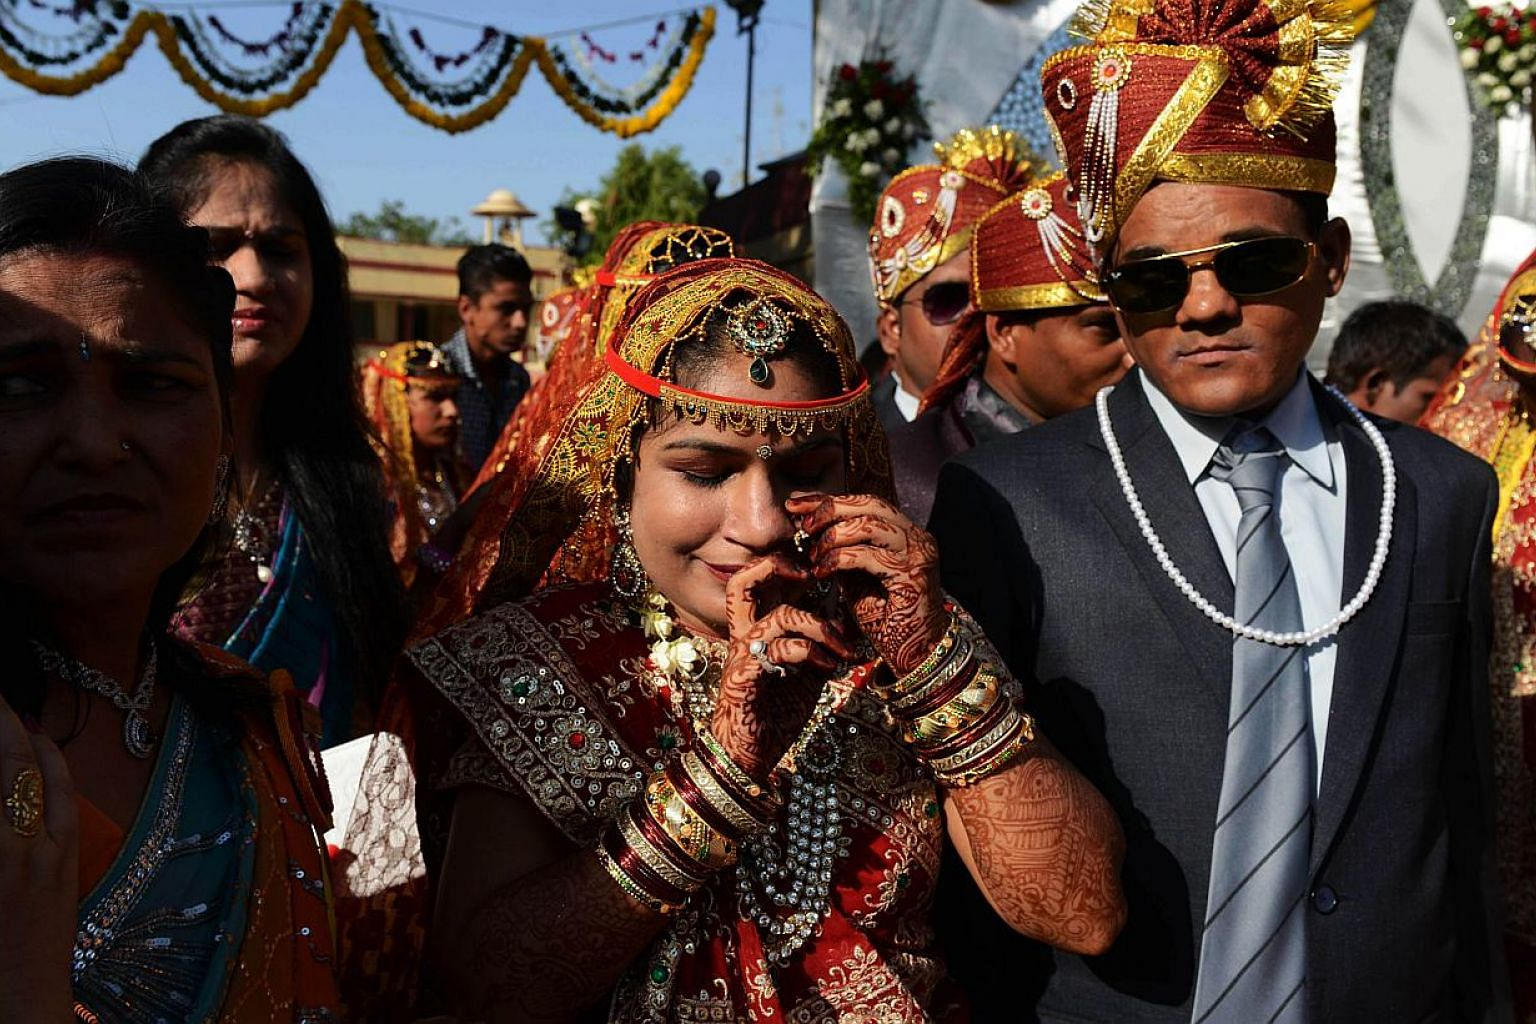 An Indian bride (centre) adjusts her jewellry ahead of a mass wedding in Ahmedabad on May 17, 2015. -- PHOTO: AFP